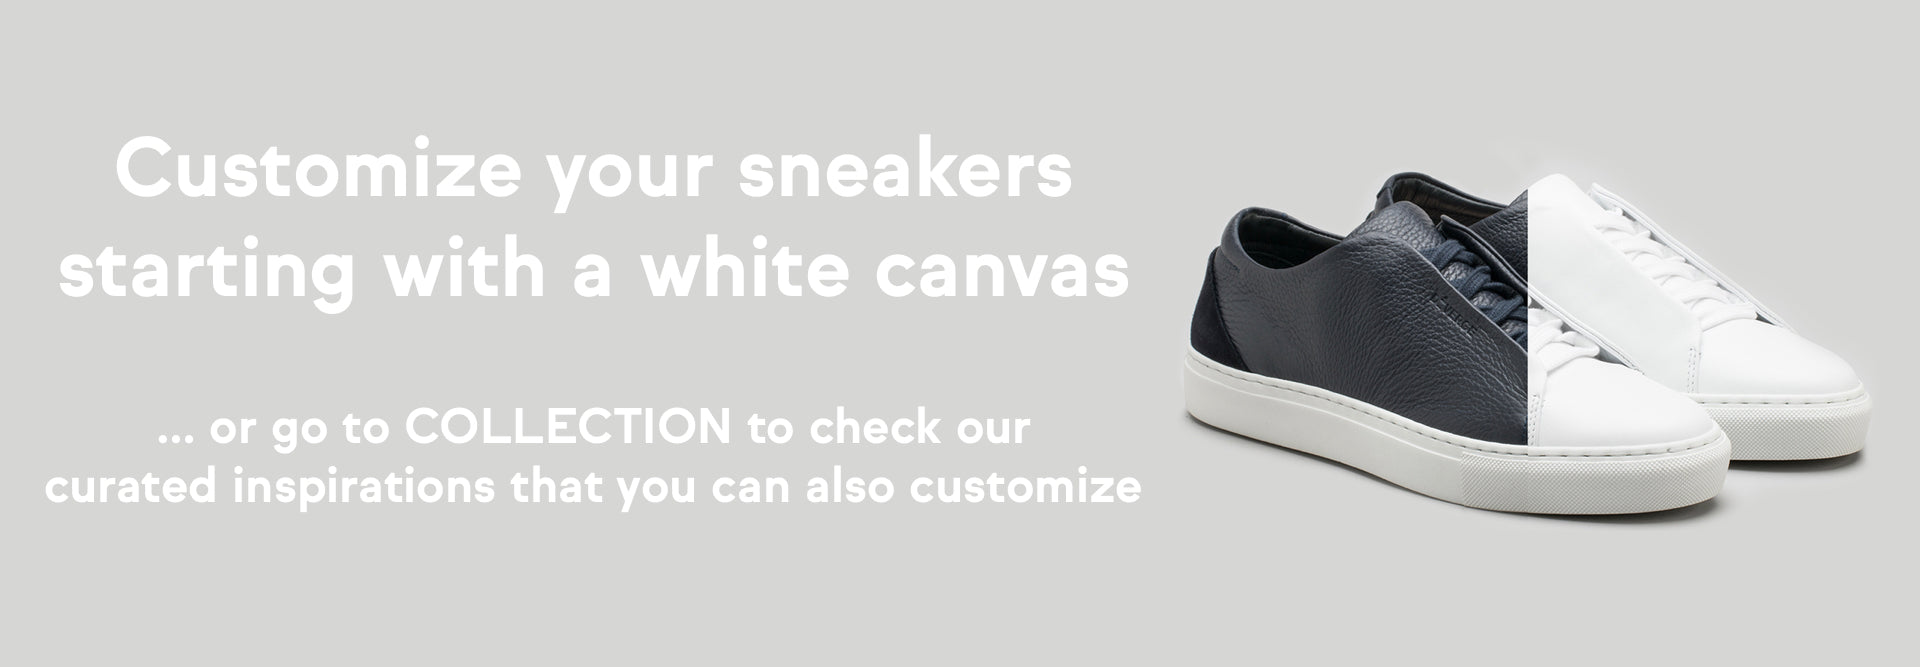 Customize your sneakers starting with a white canvas. All sneaker models for you to customize premium handcrafted sneakers.